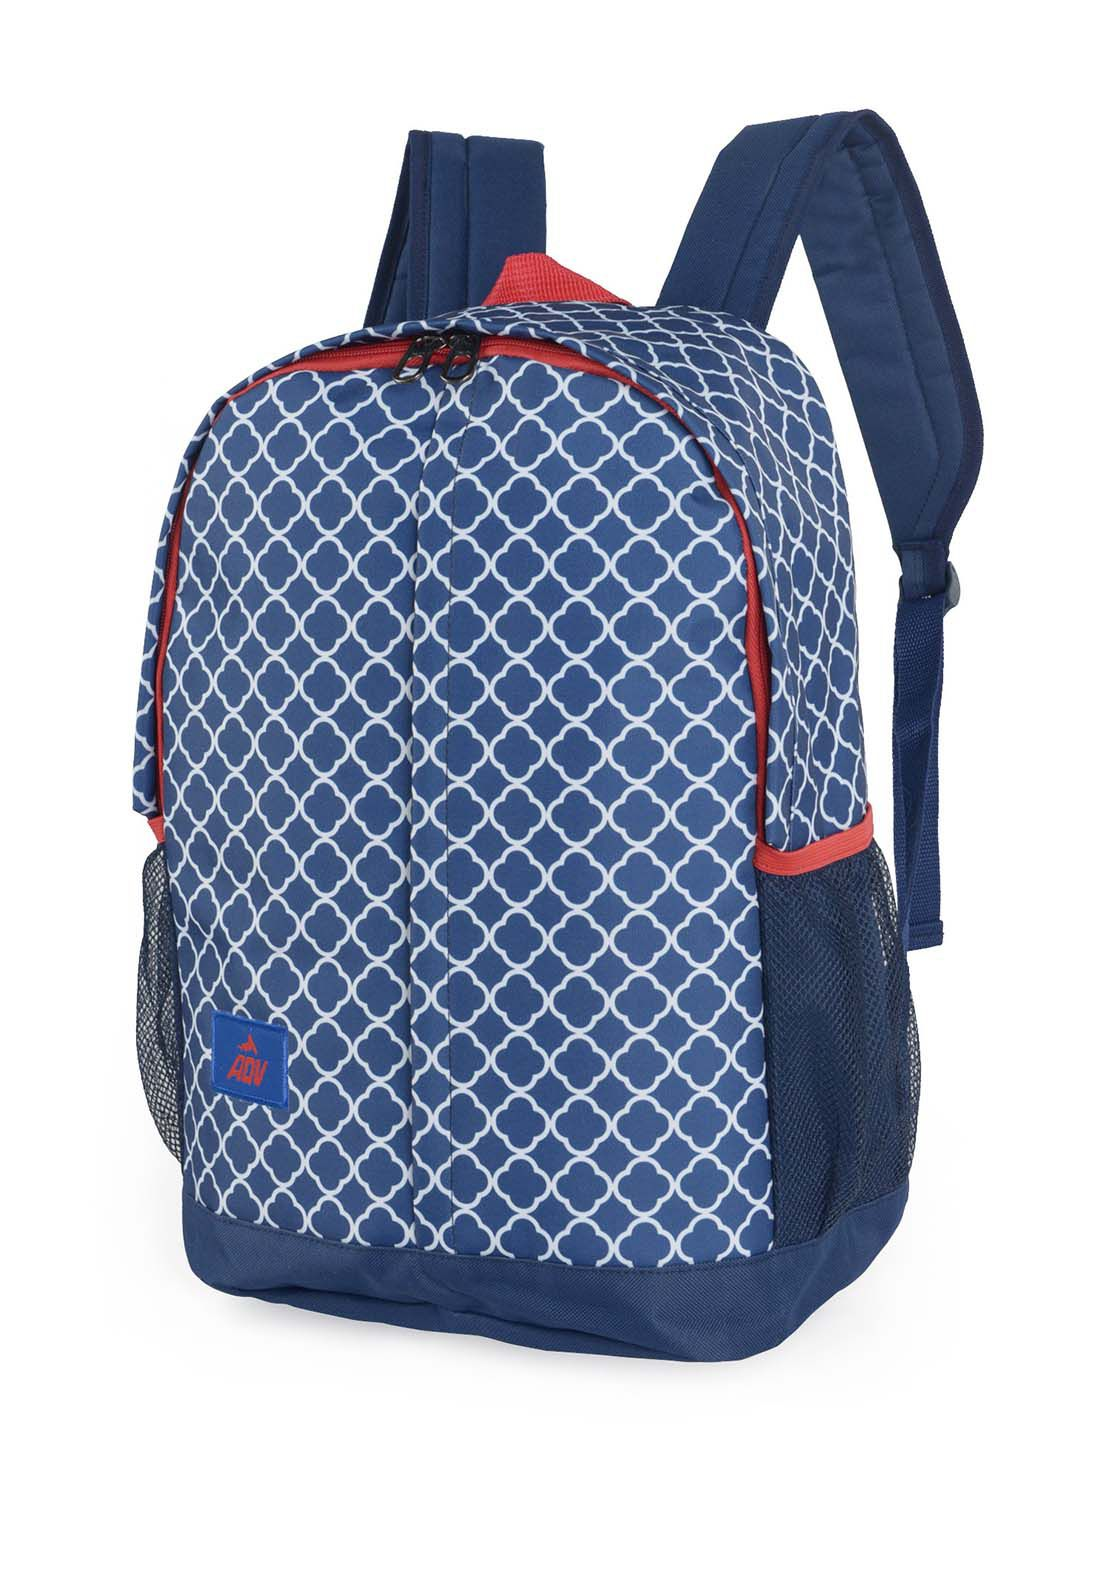 Mochila de Costas Adventteam Azul Royal